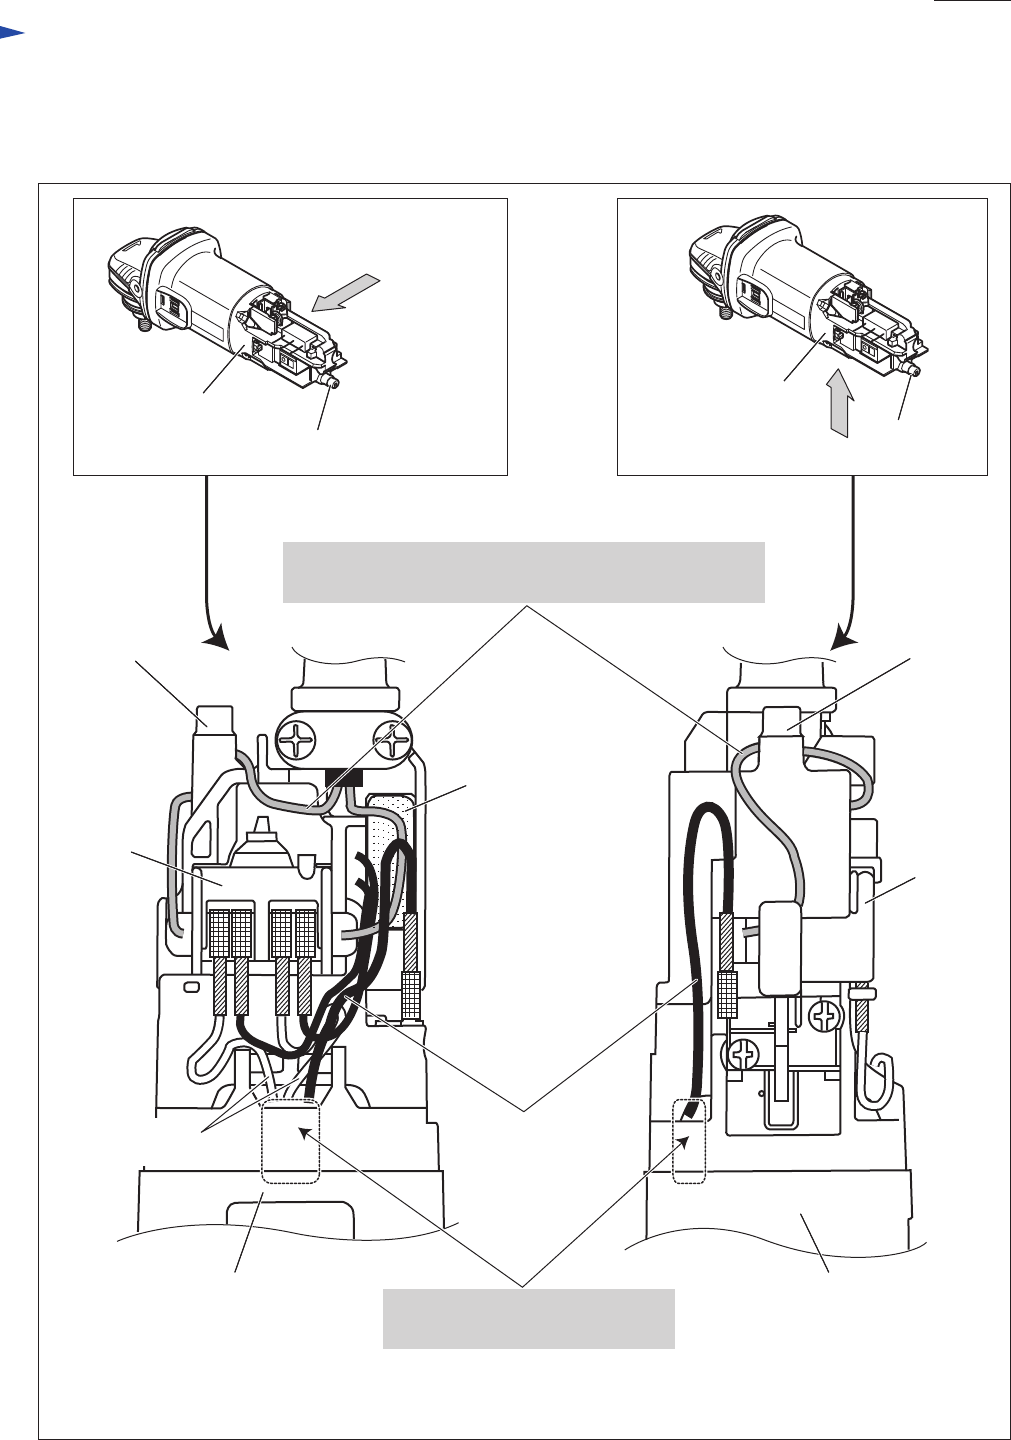 Craftsman Riding Mower Electrical Schematic Lawn Schematics